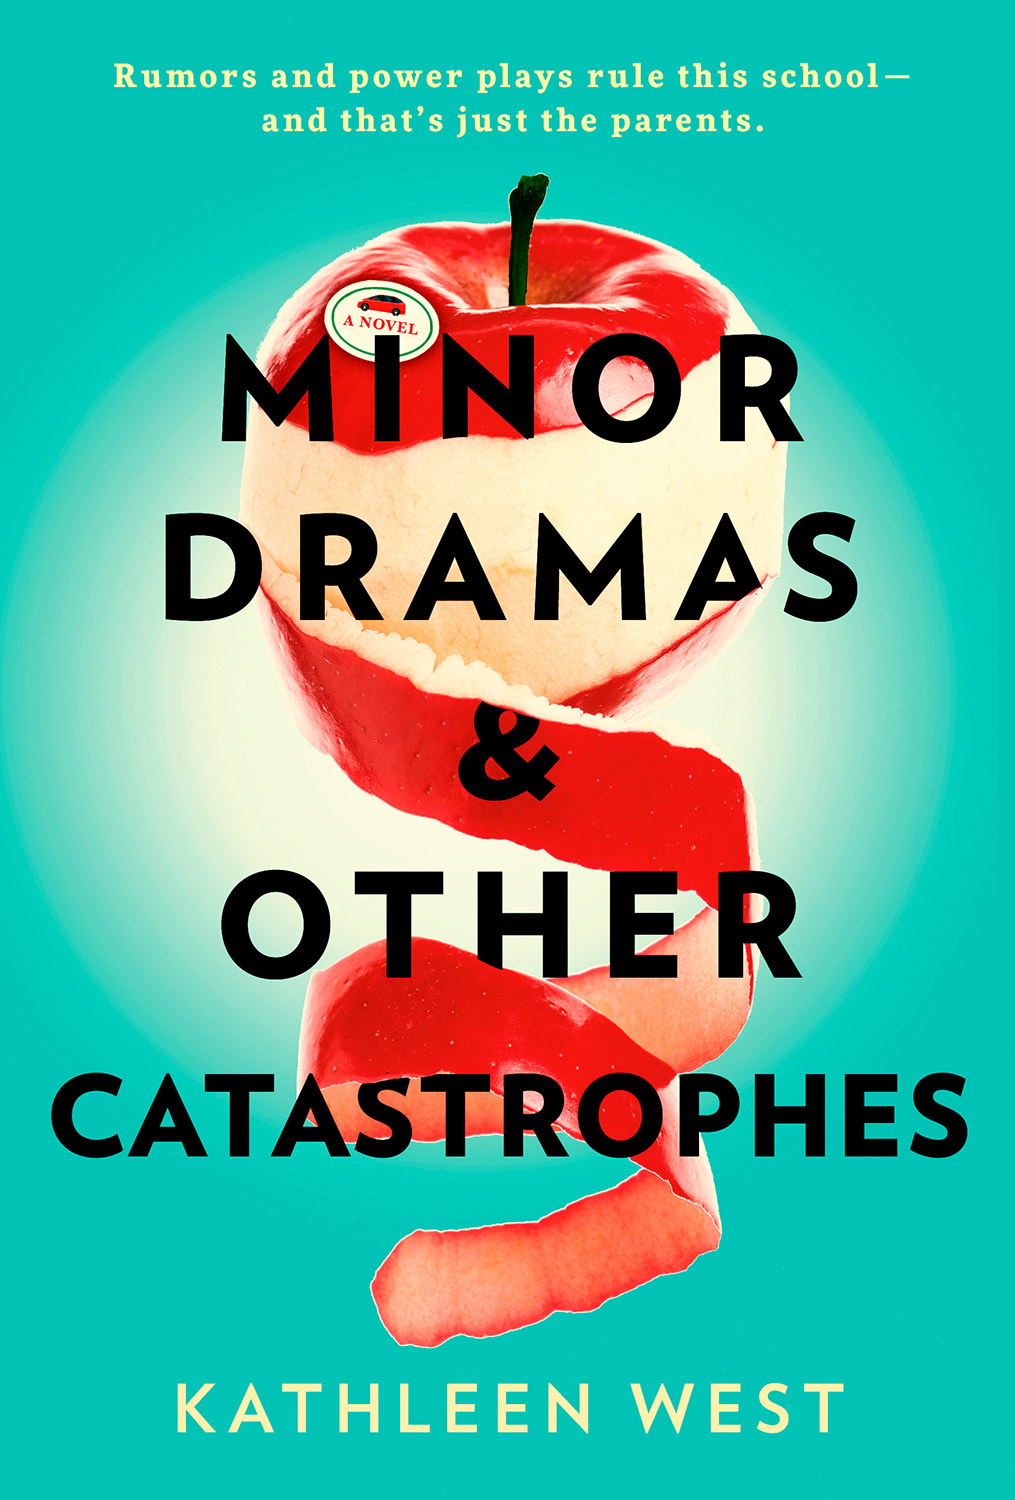 Minor Dramas and Other Catastrophes, by Kathleen West